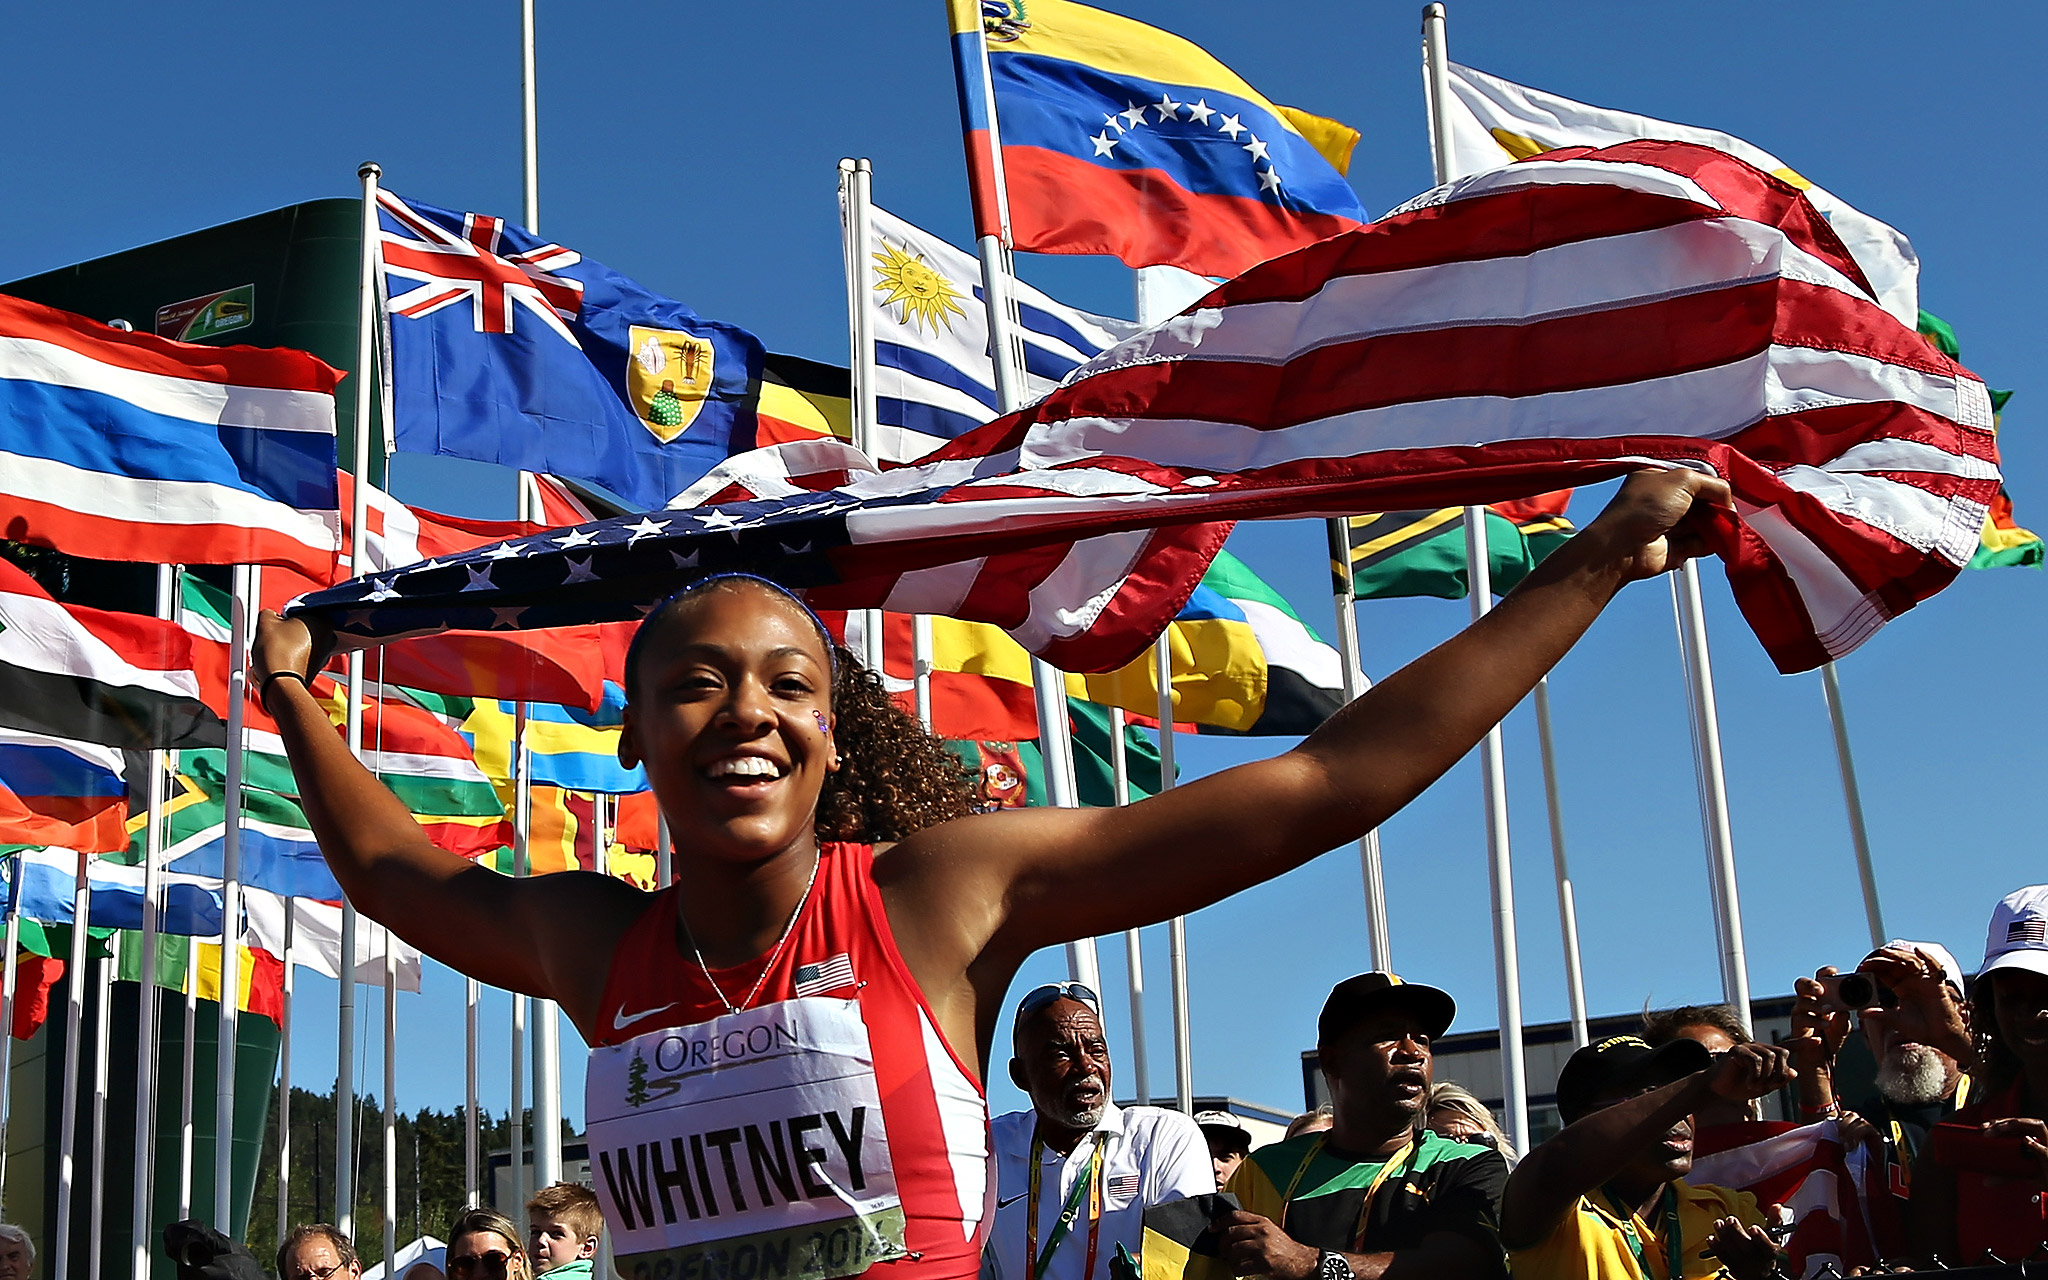 Kaylin Whitney of USA celebrates after running the anchor leg and winning the women's 4X100-meter relay during Day 5 of the IAAF junior world championships at Hayward Field in Eugene, Oregon.